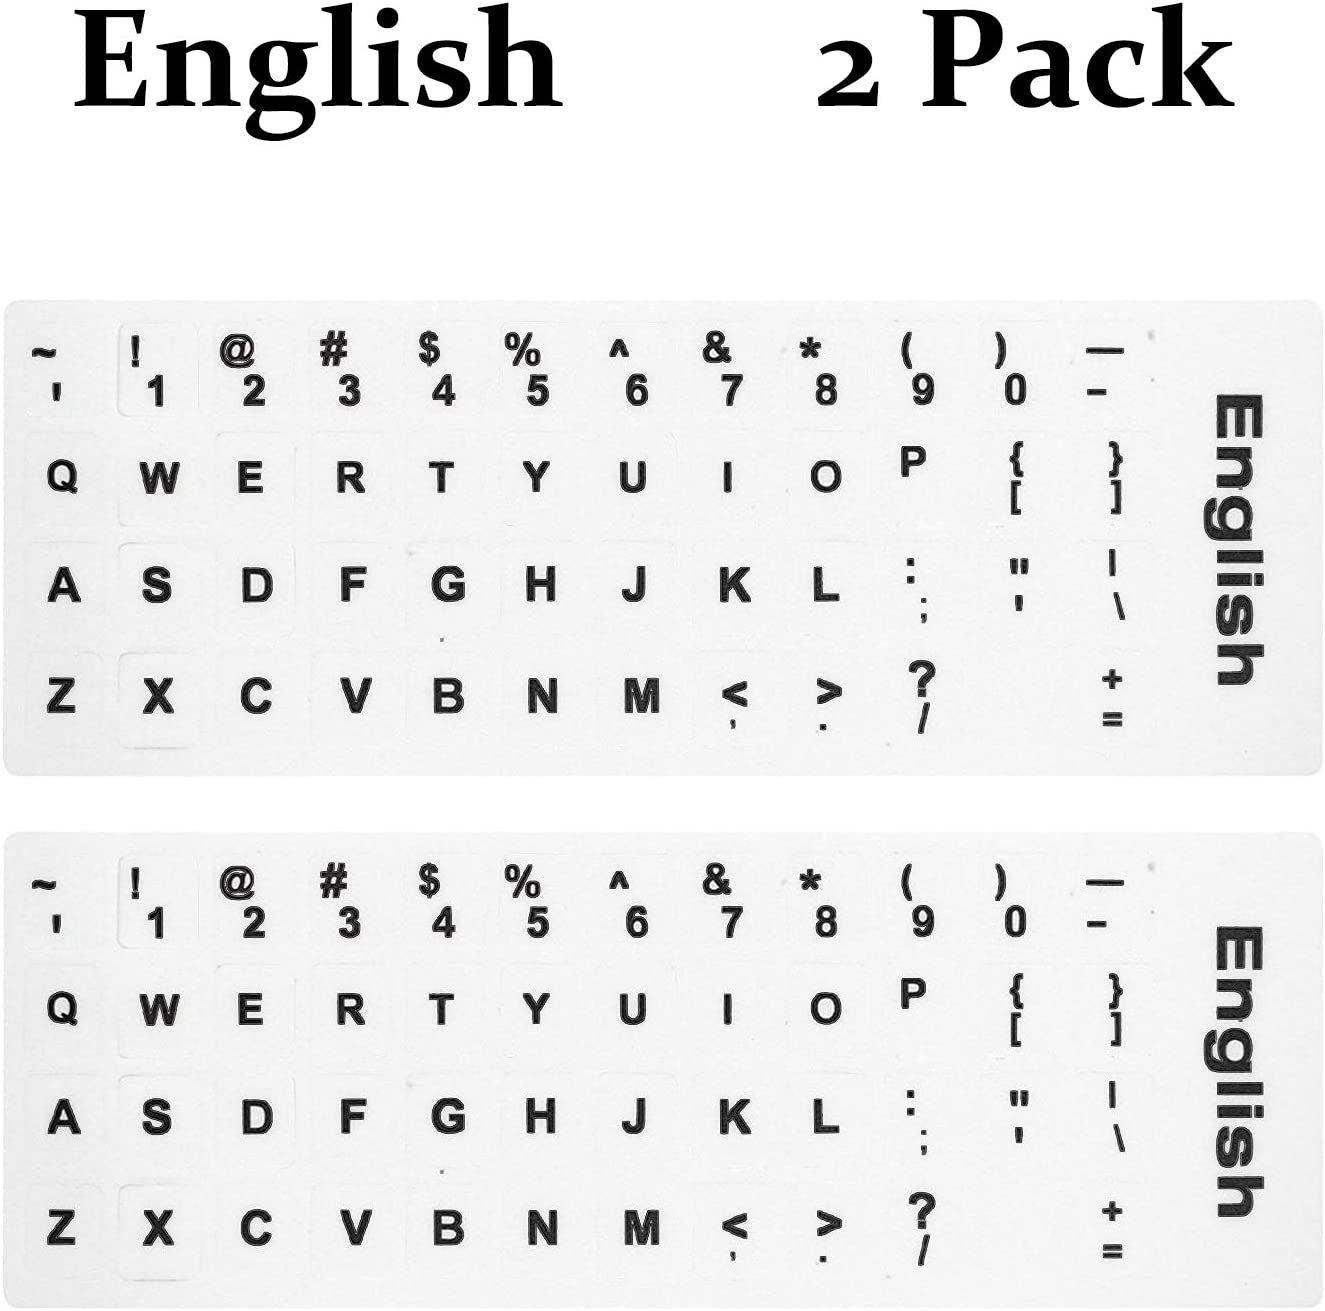 2PCS Pack English Keyboard Stickers English Keyboard Replacement Srickers with White Background and Black Lettering for Computer Notebook Laptop Desktop Keyboards